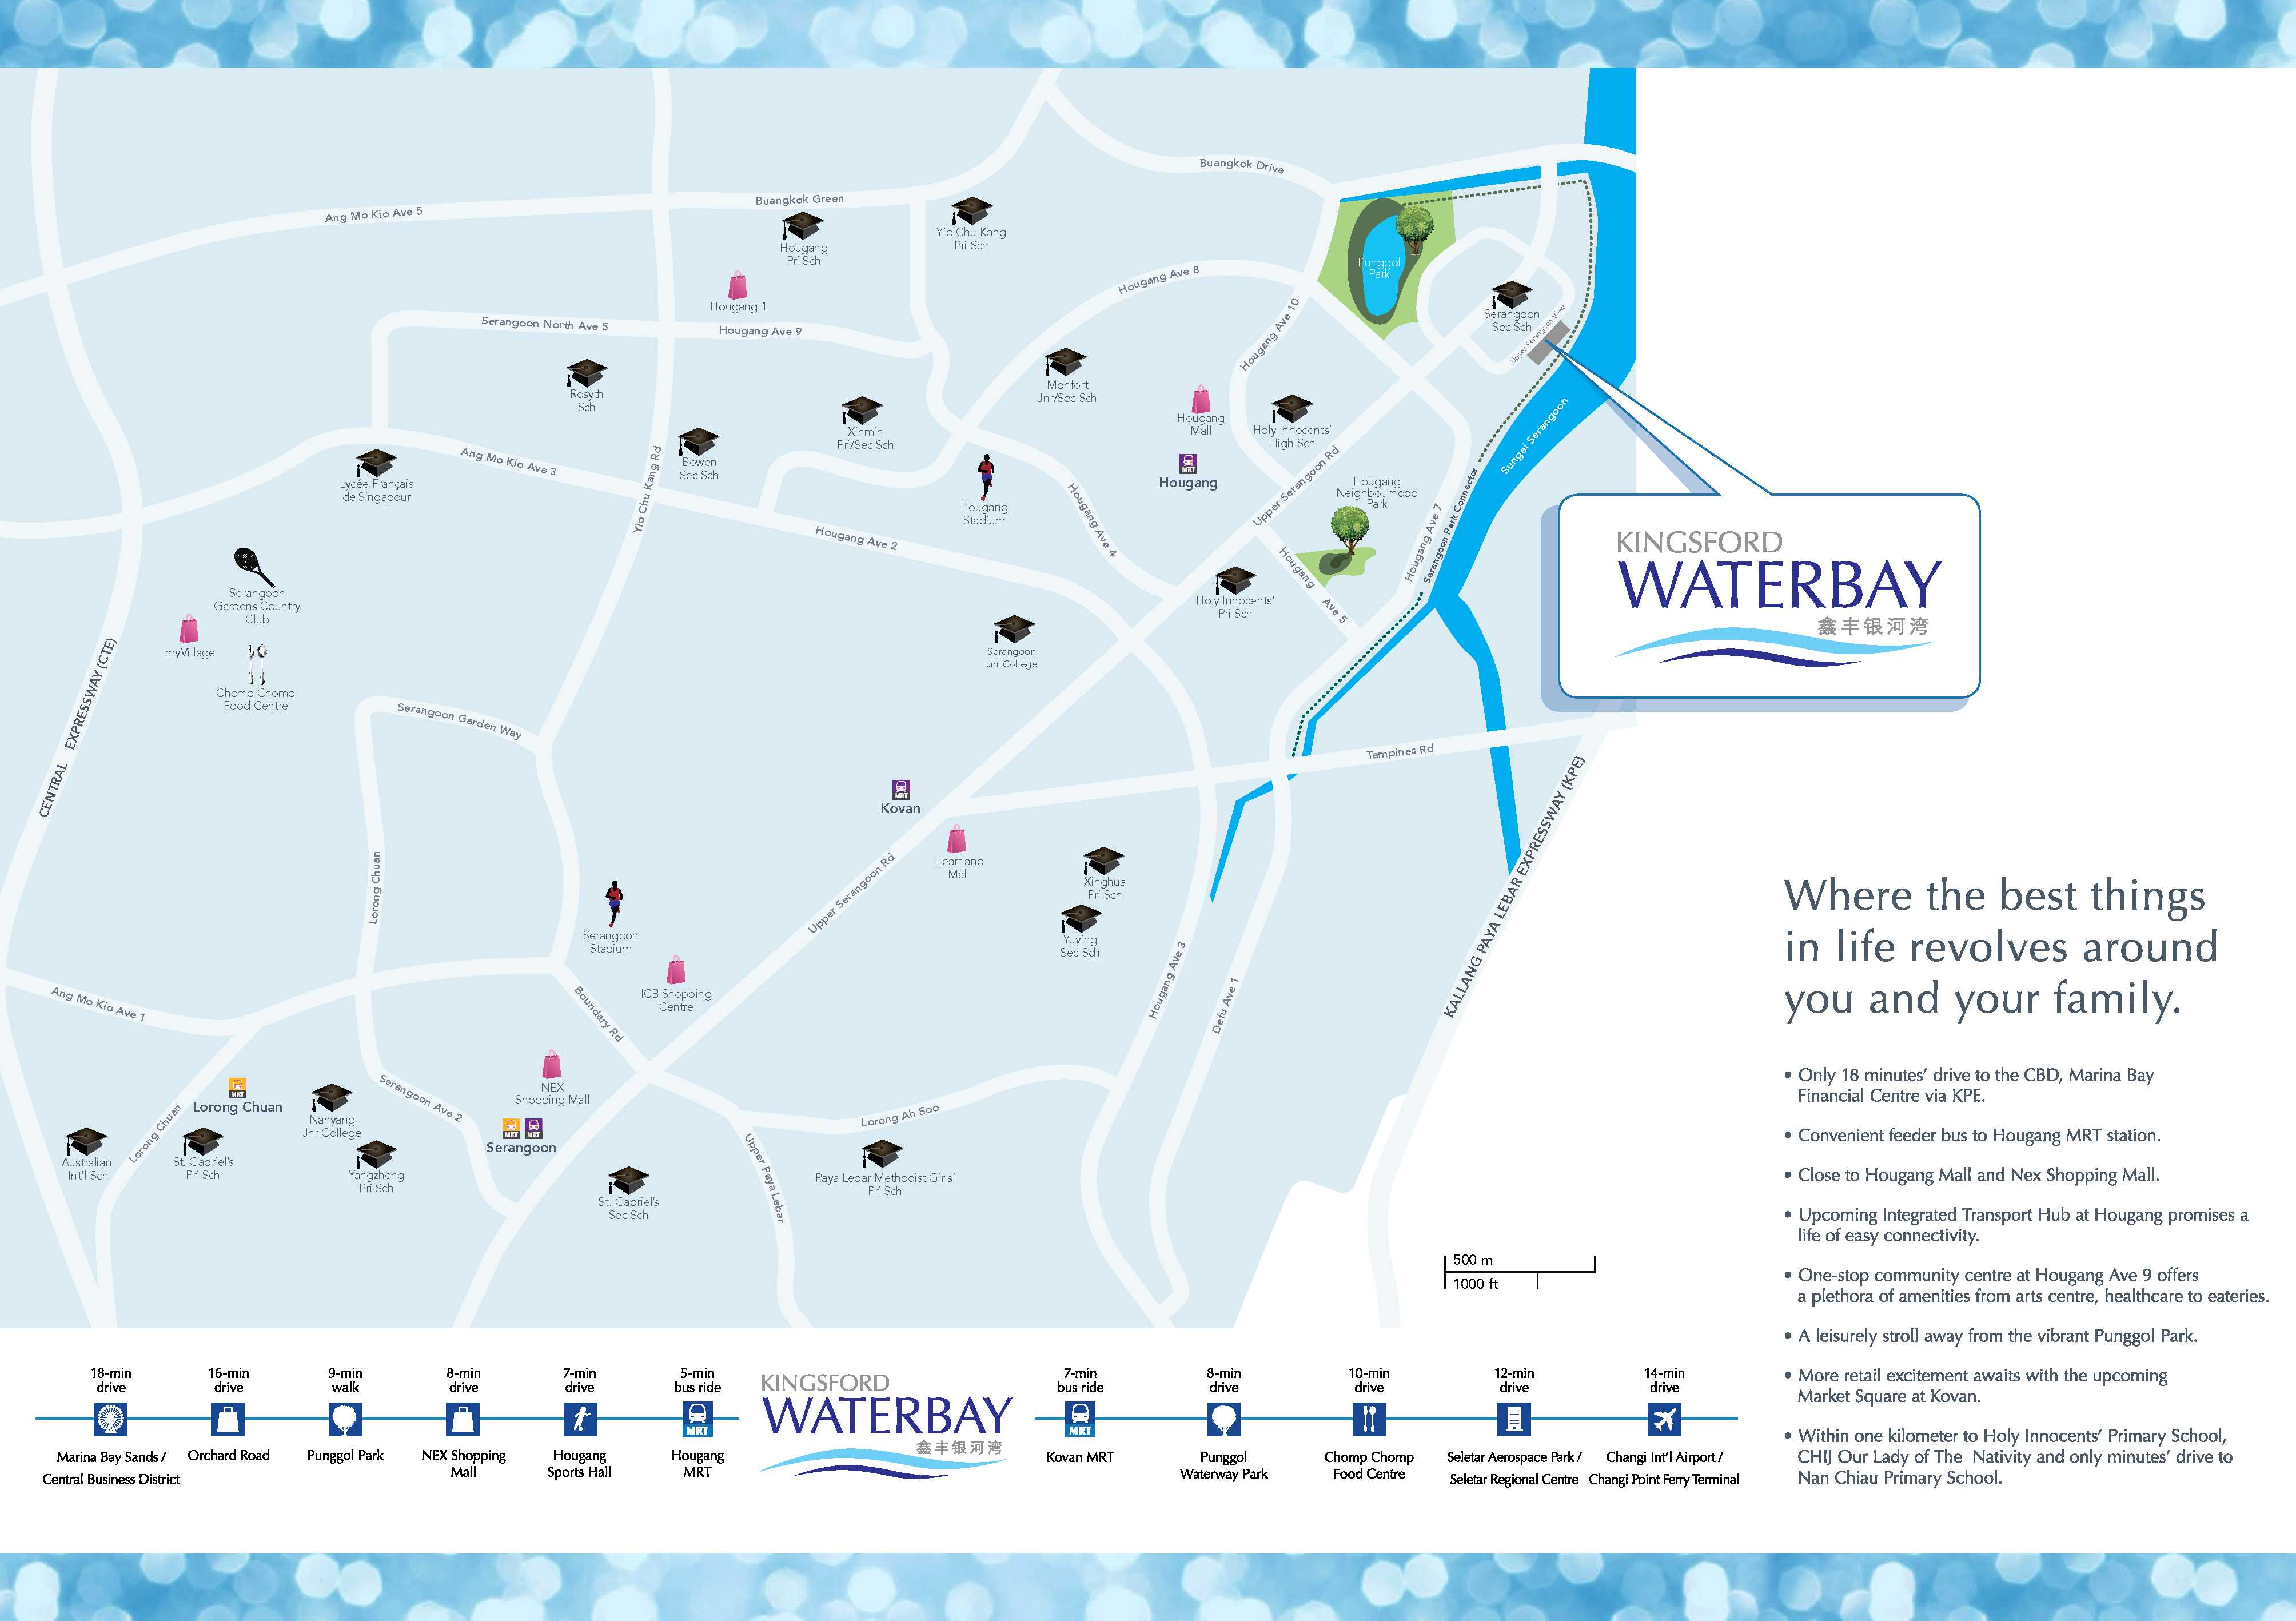 Waterbay Location & Amenities